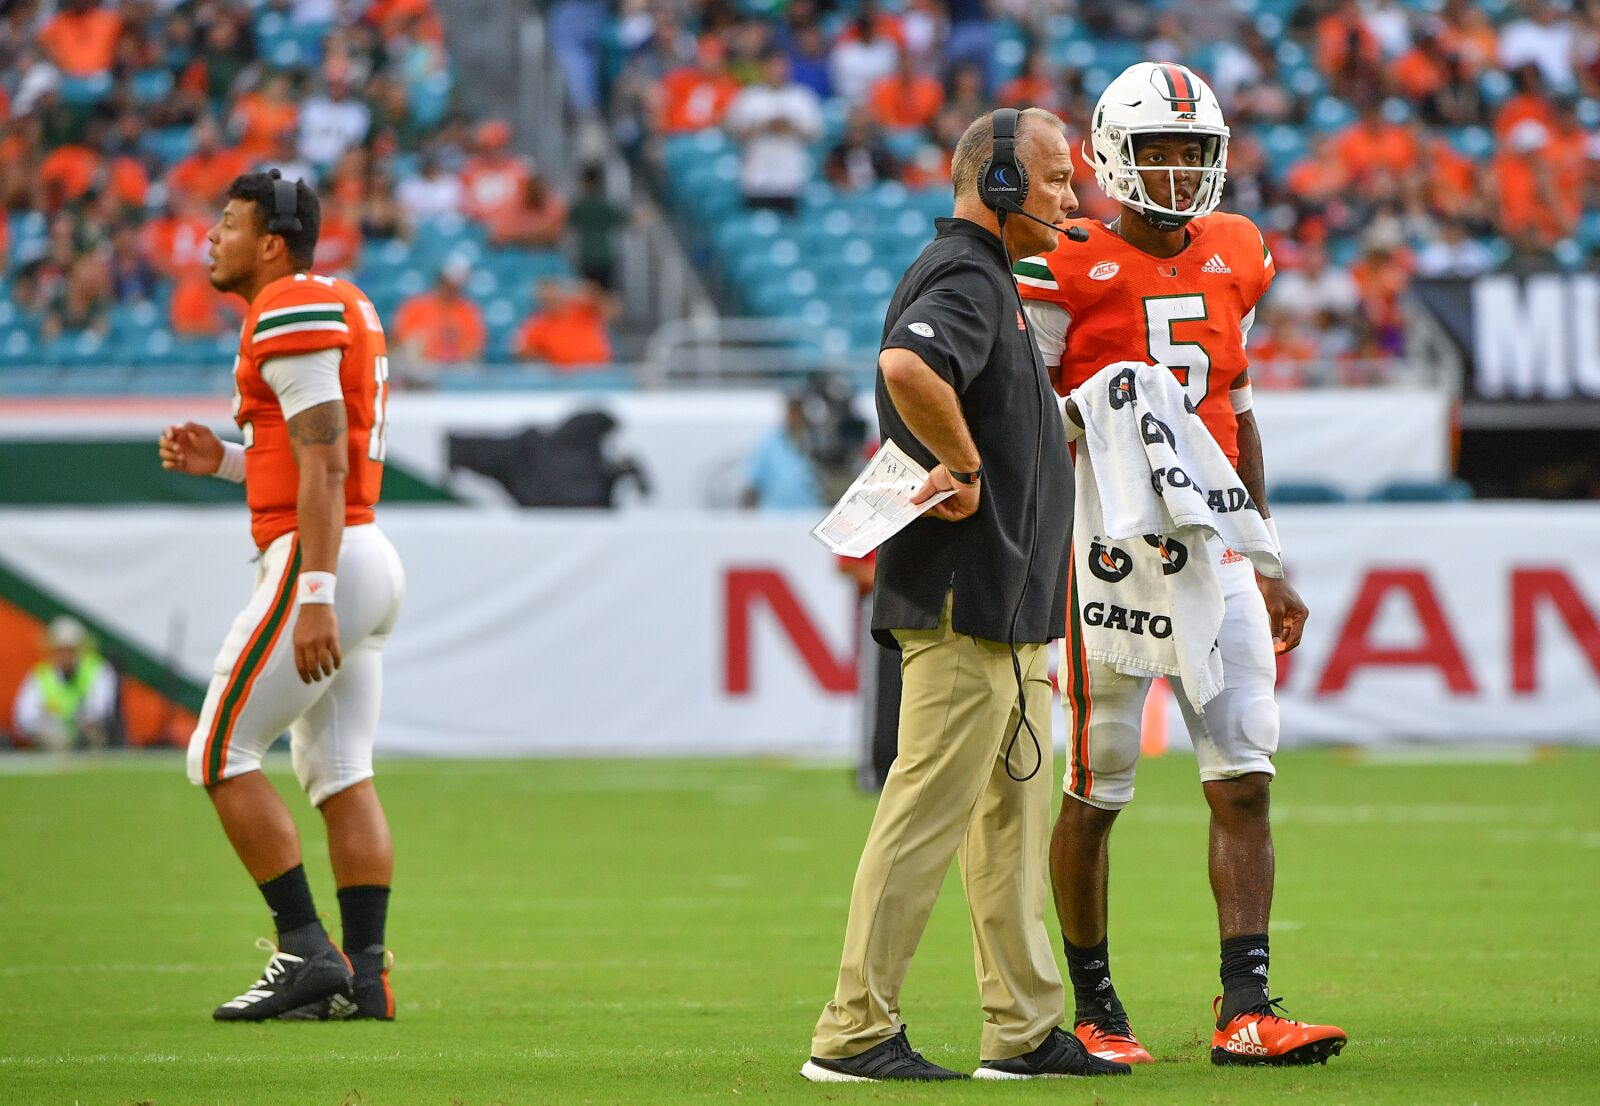 Miami football is looking at quarterbacks beyond Hurts and Martell